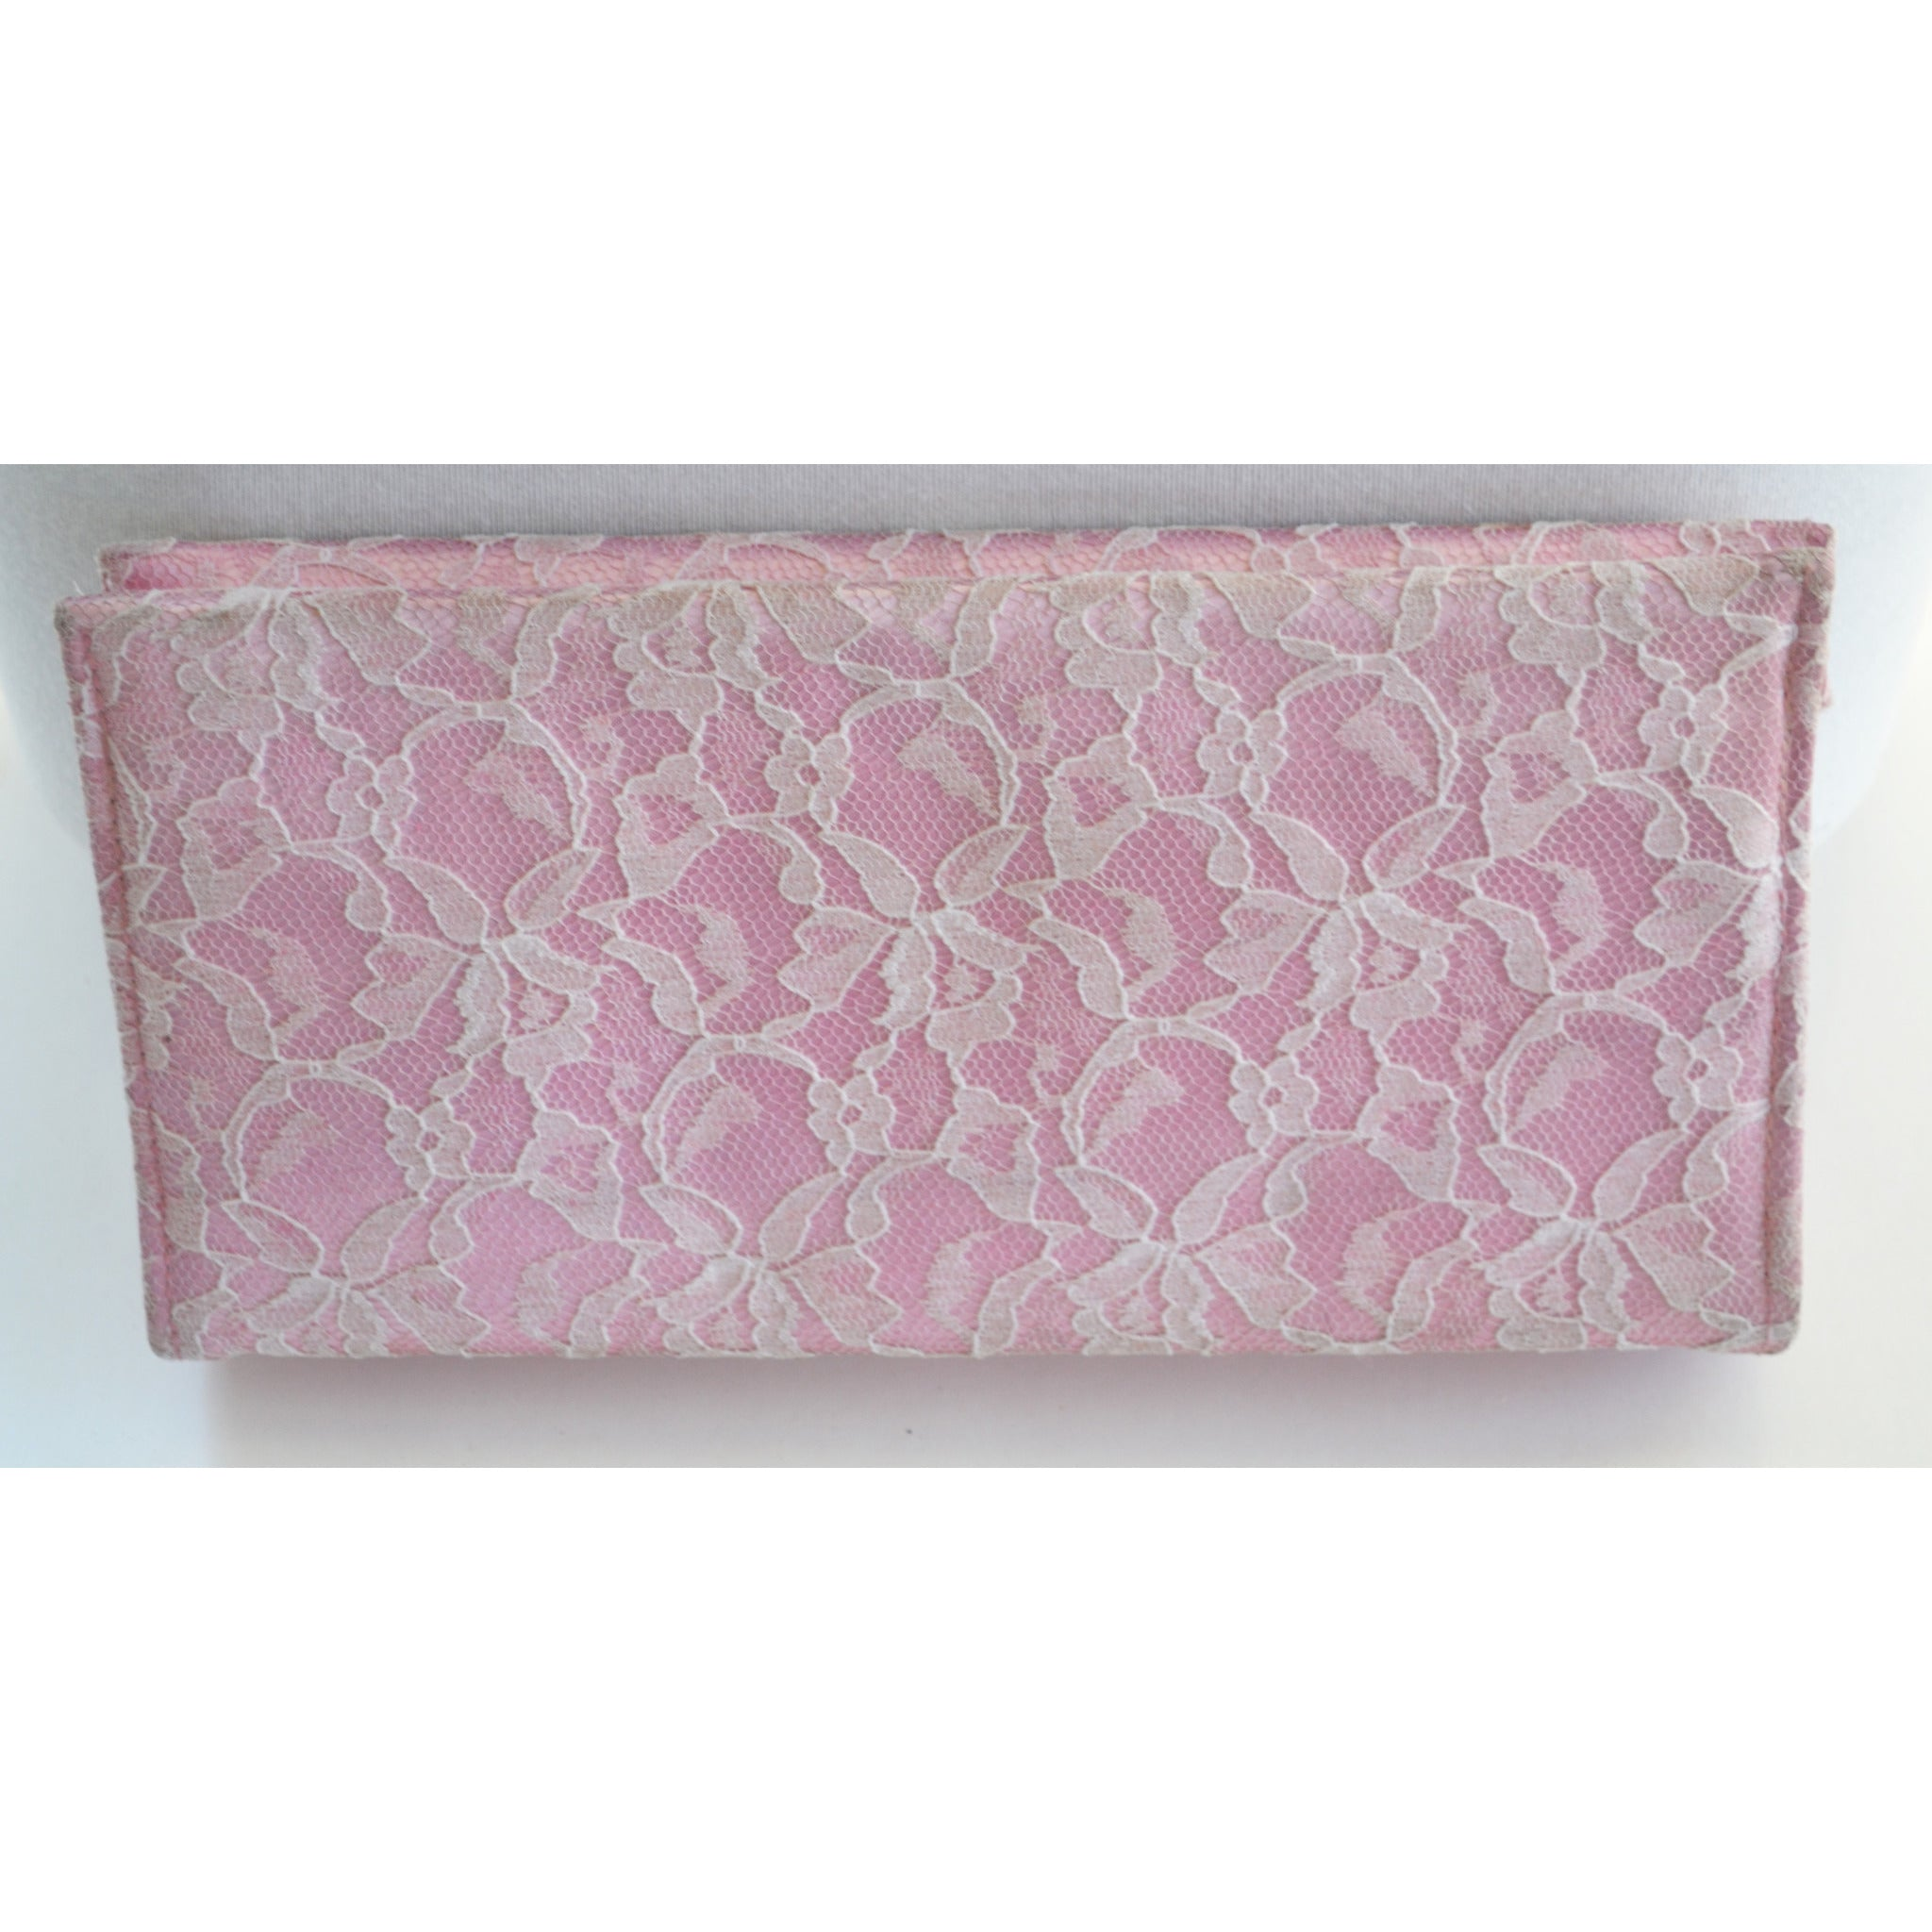 Vintage Pink & Satin Lace Clutch Purse